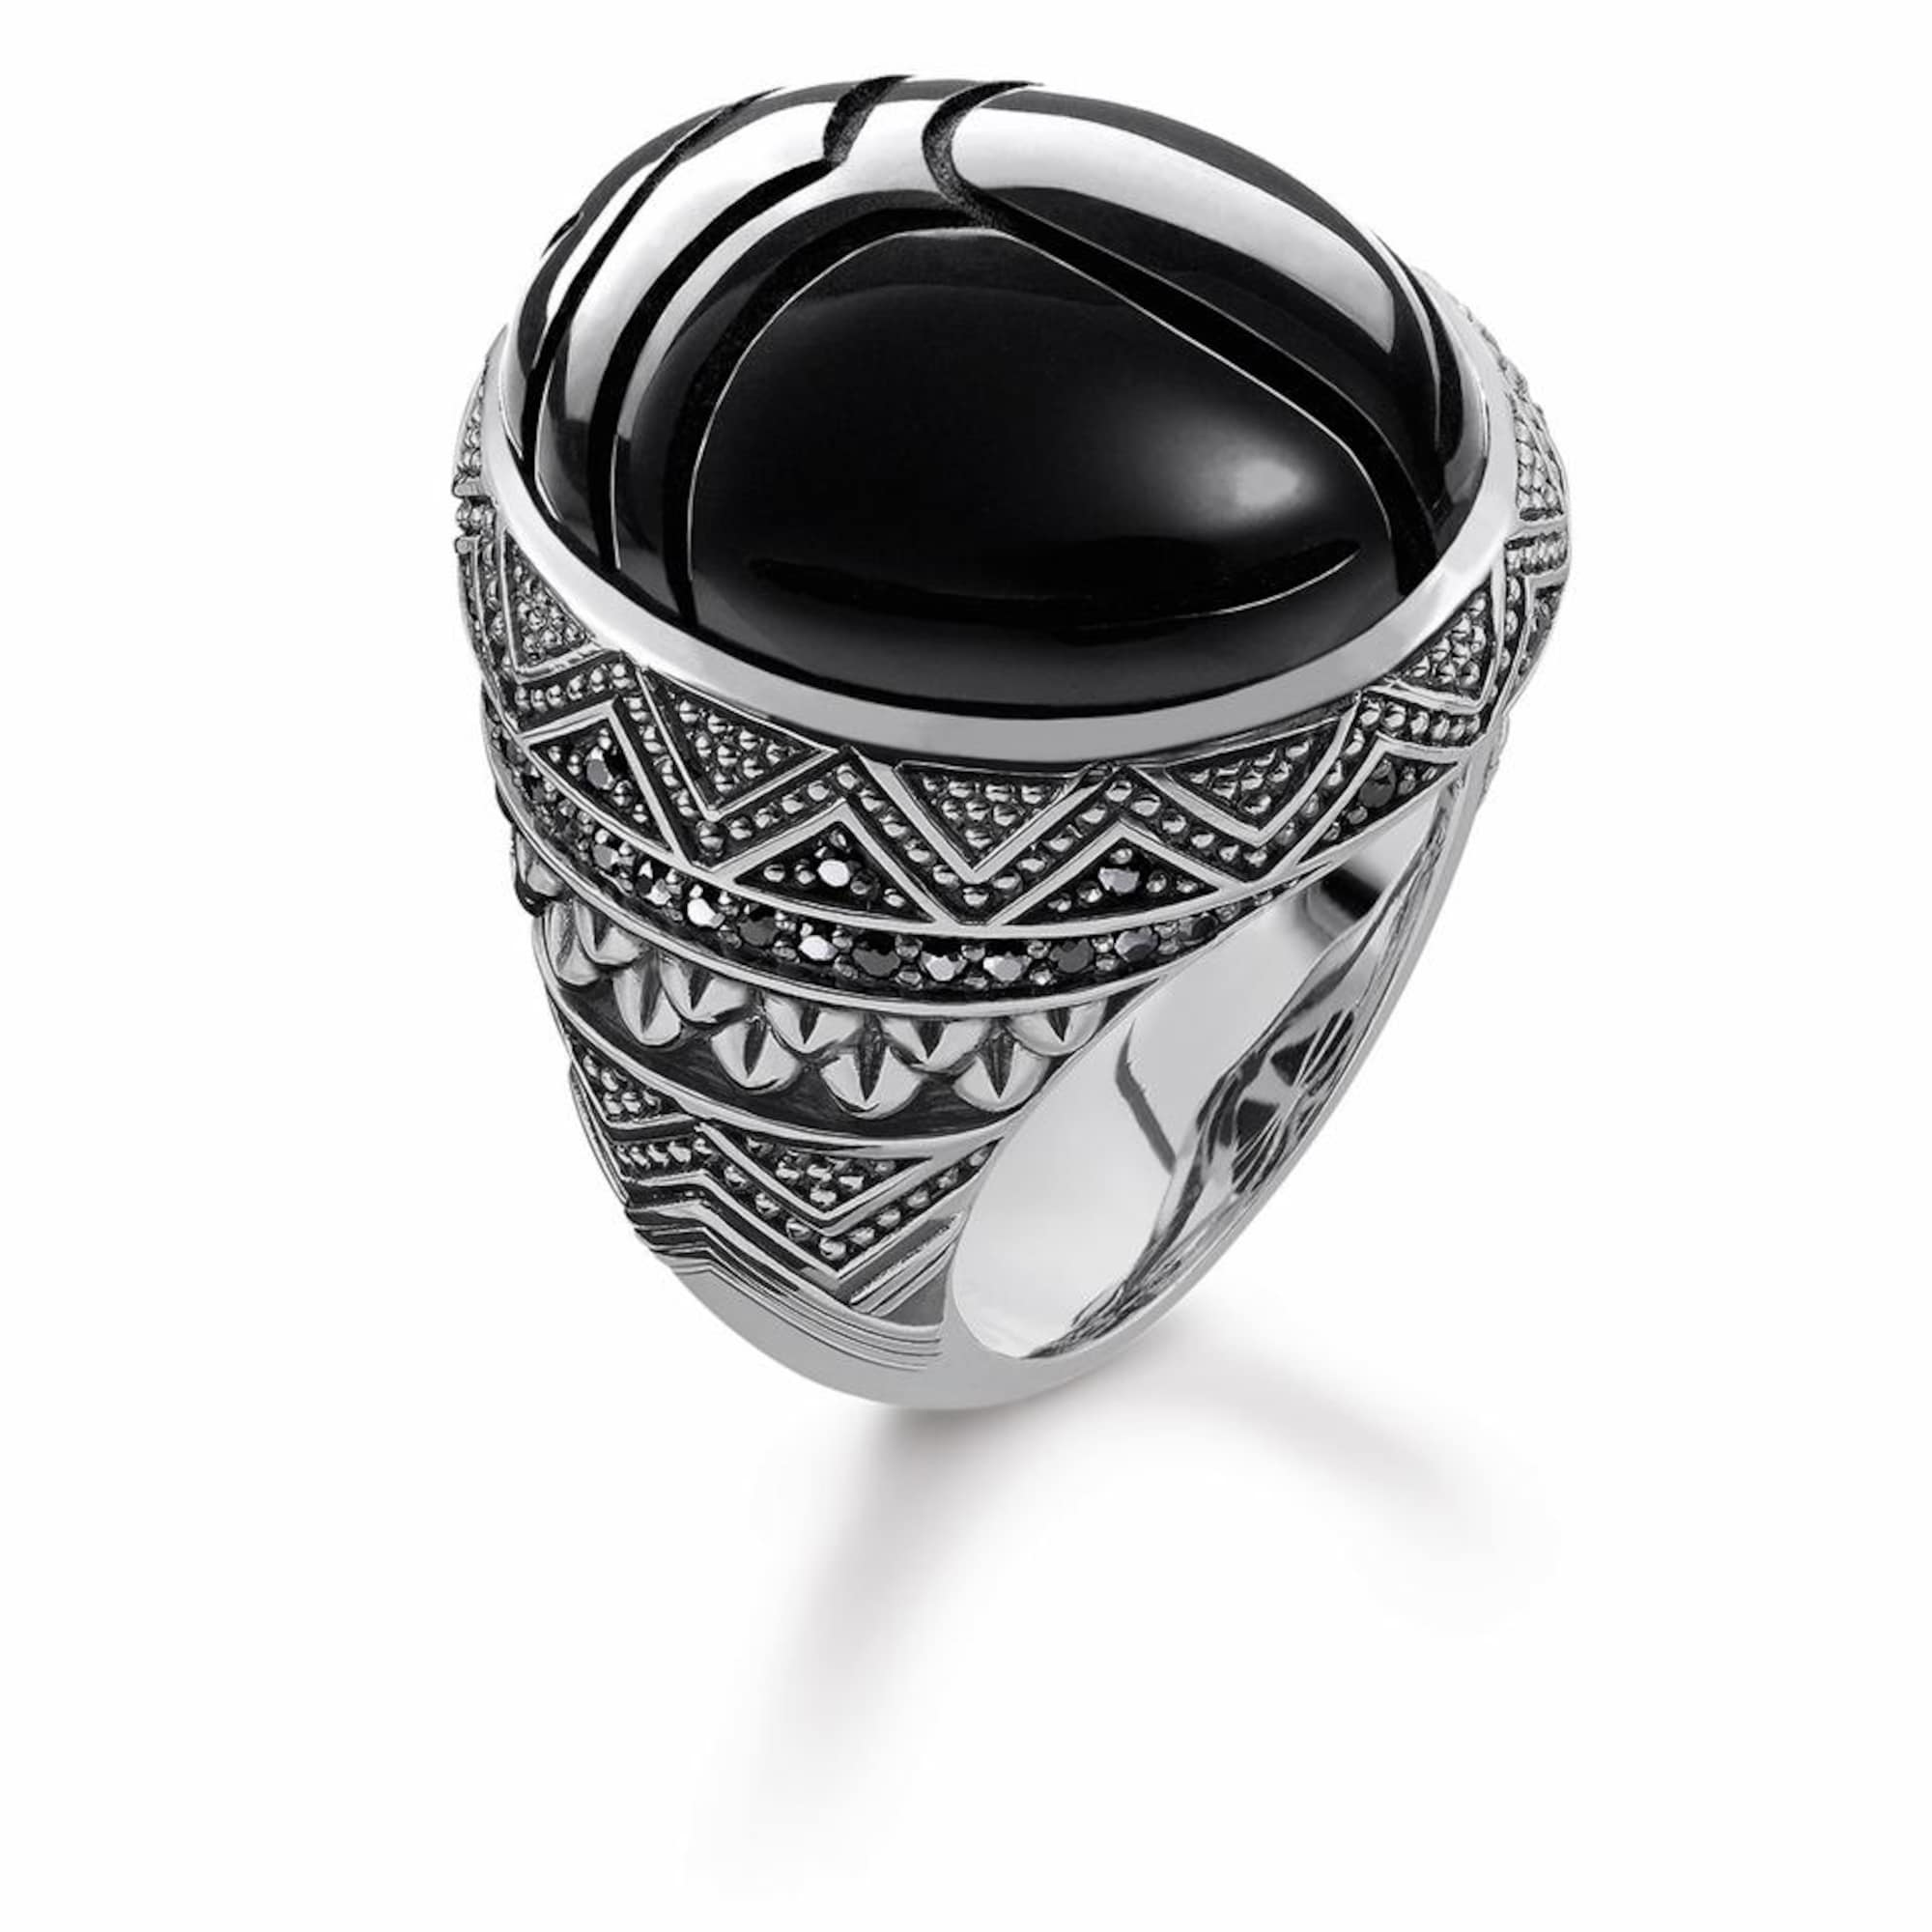 Fingerring | Schmuck | Thomas Sabo